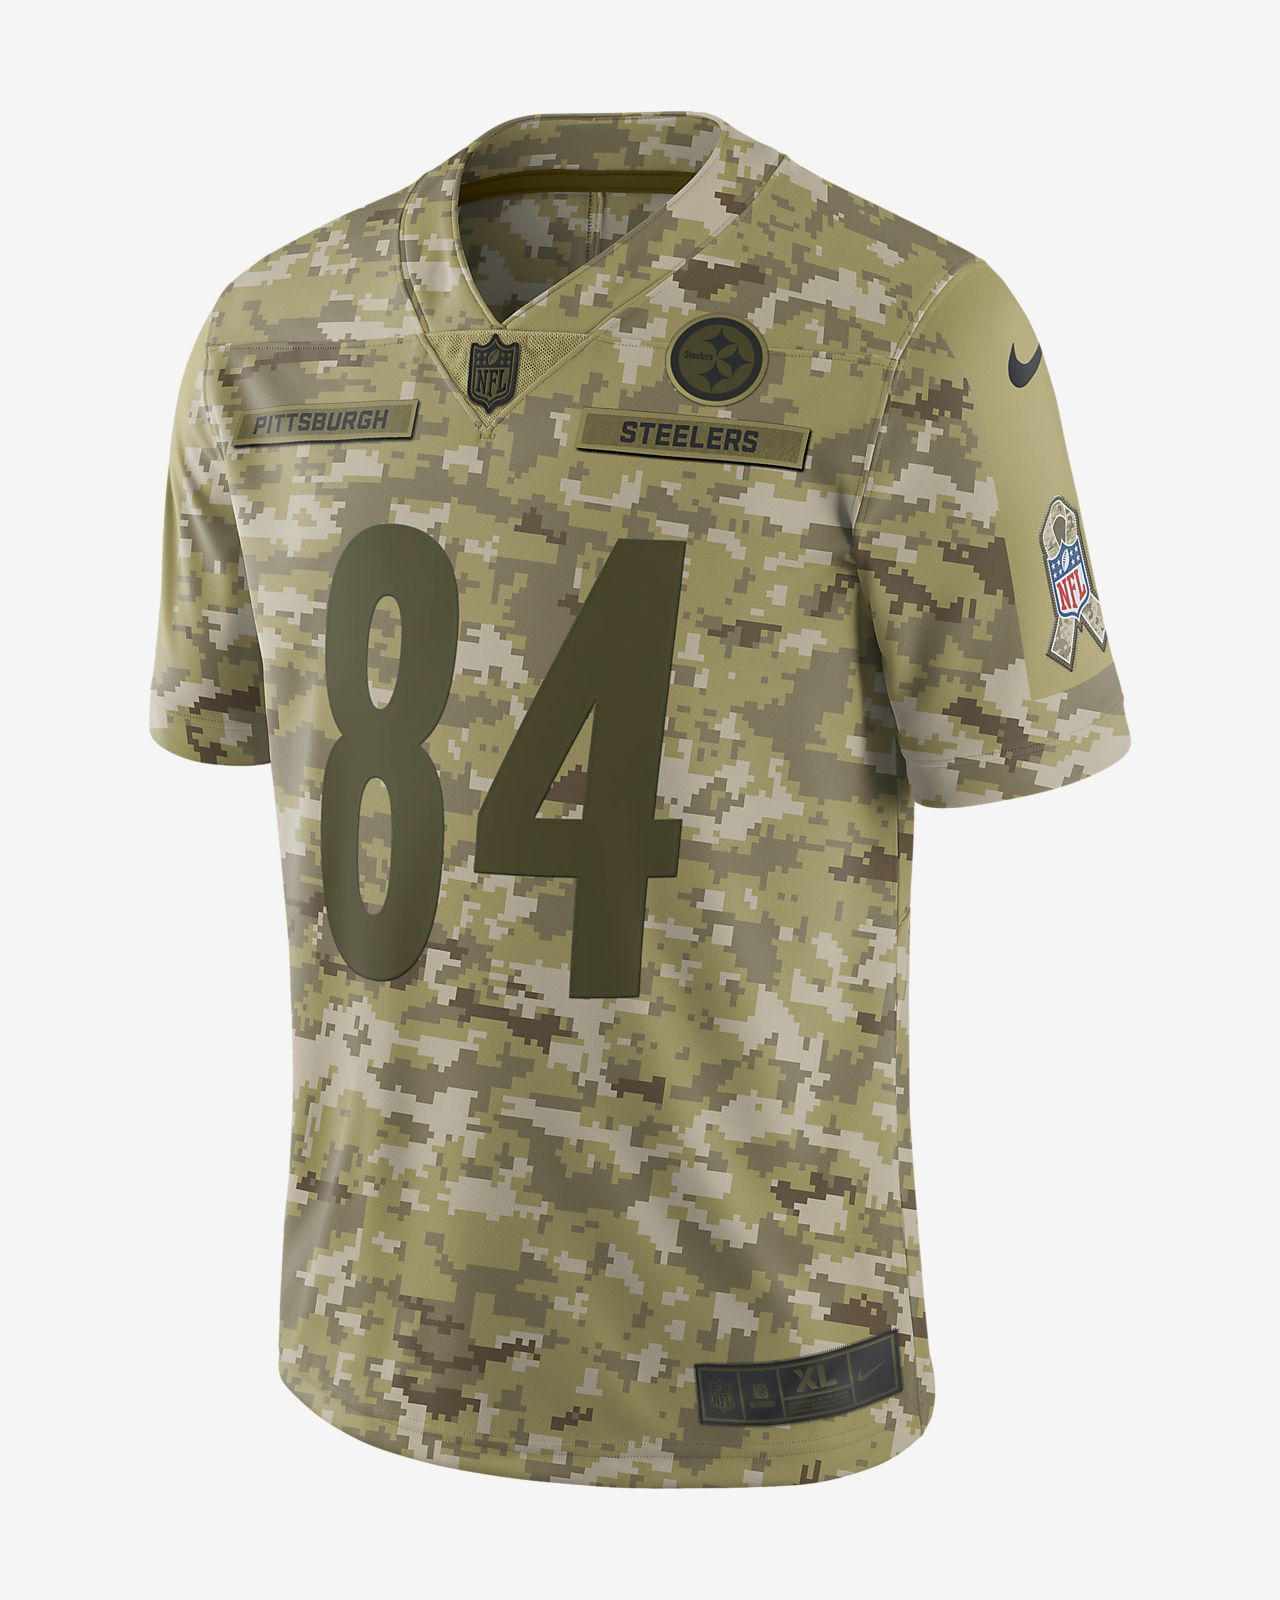 4949ccba2 ... color rush limited jersey 79186 17c73  australia nfl pittsburgh steelers  salute to service limited jersey antonio brown mens football jersey 02bab  ad051